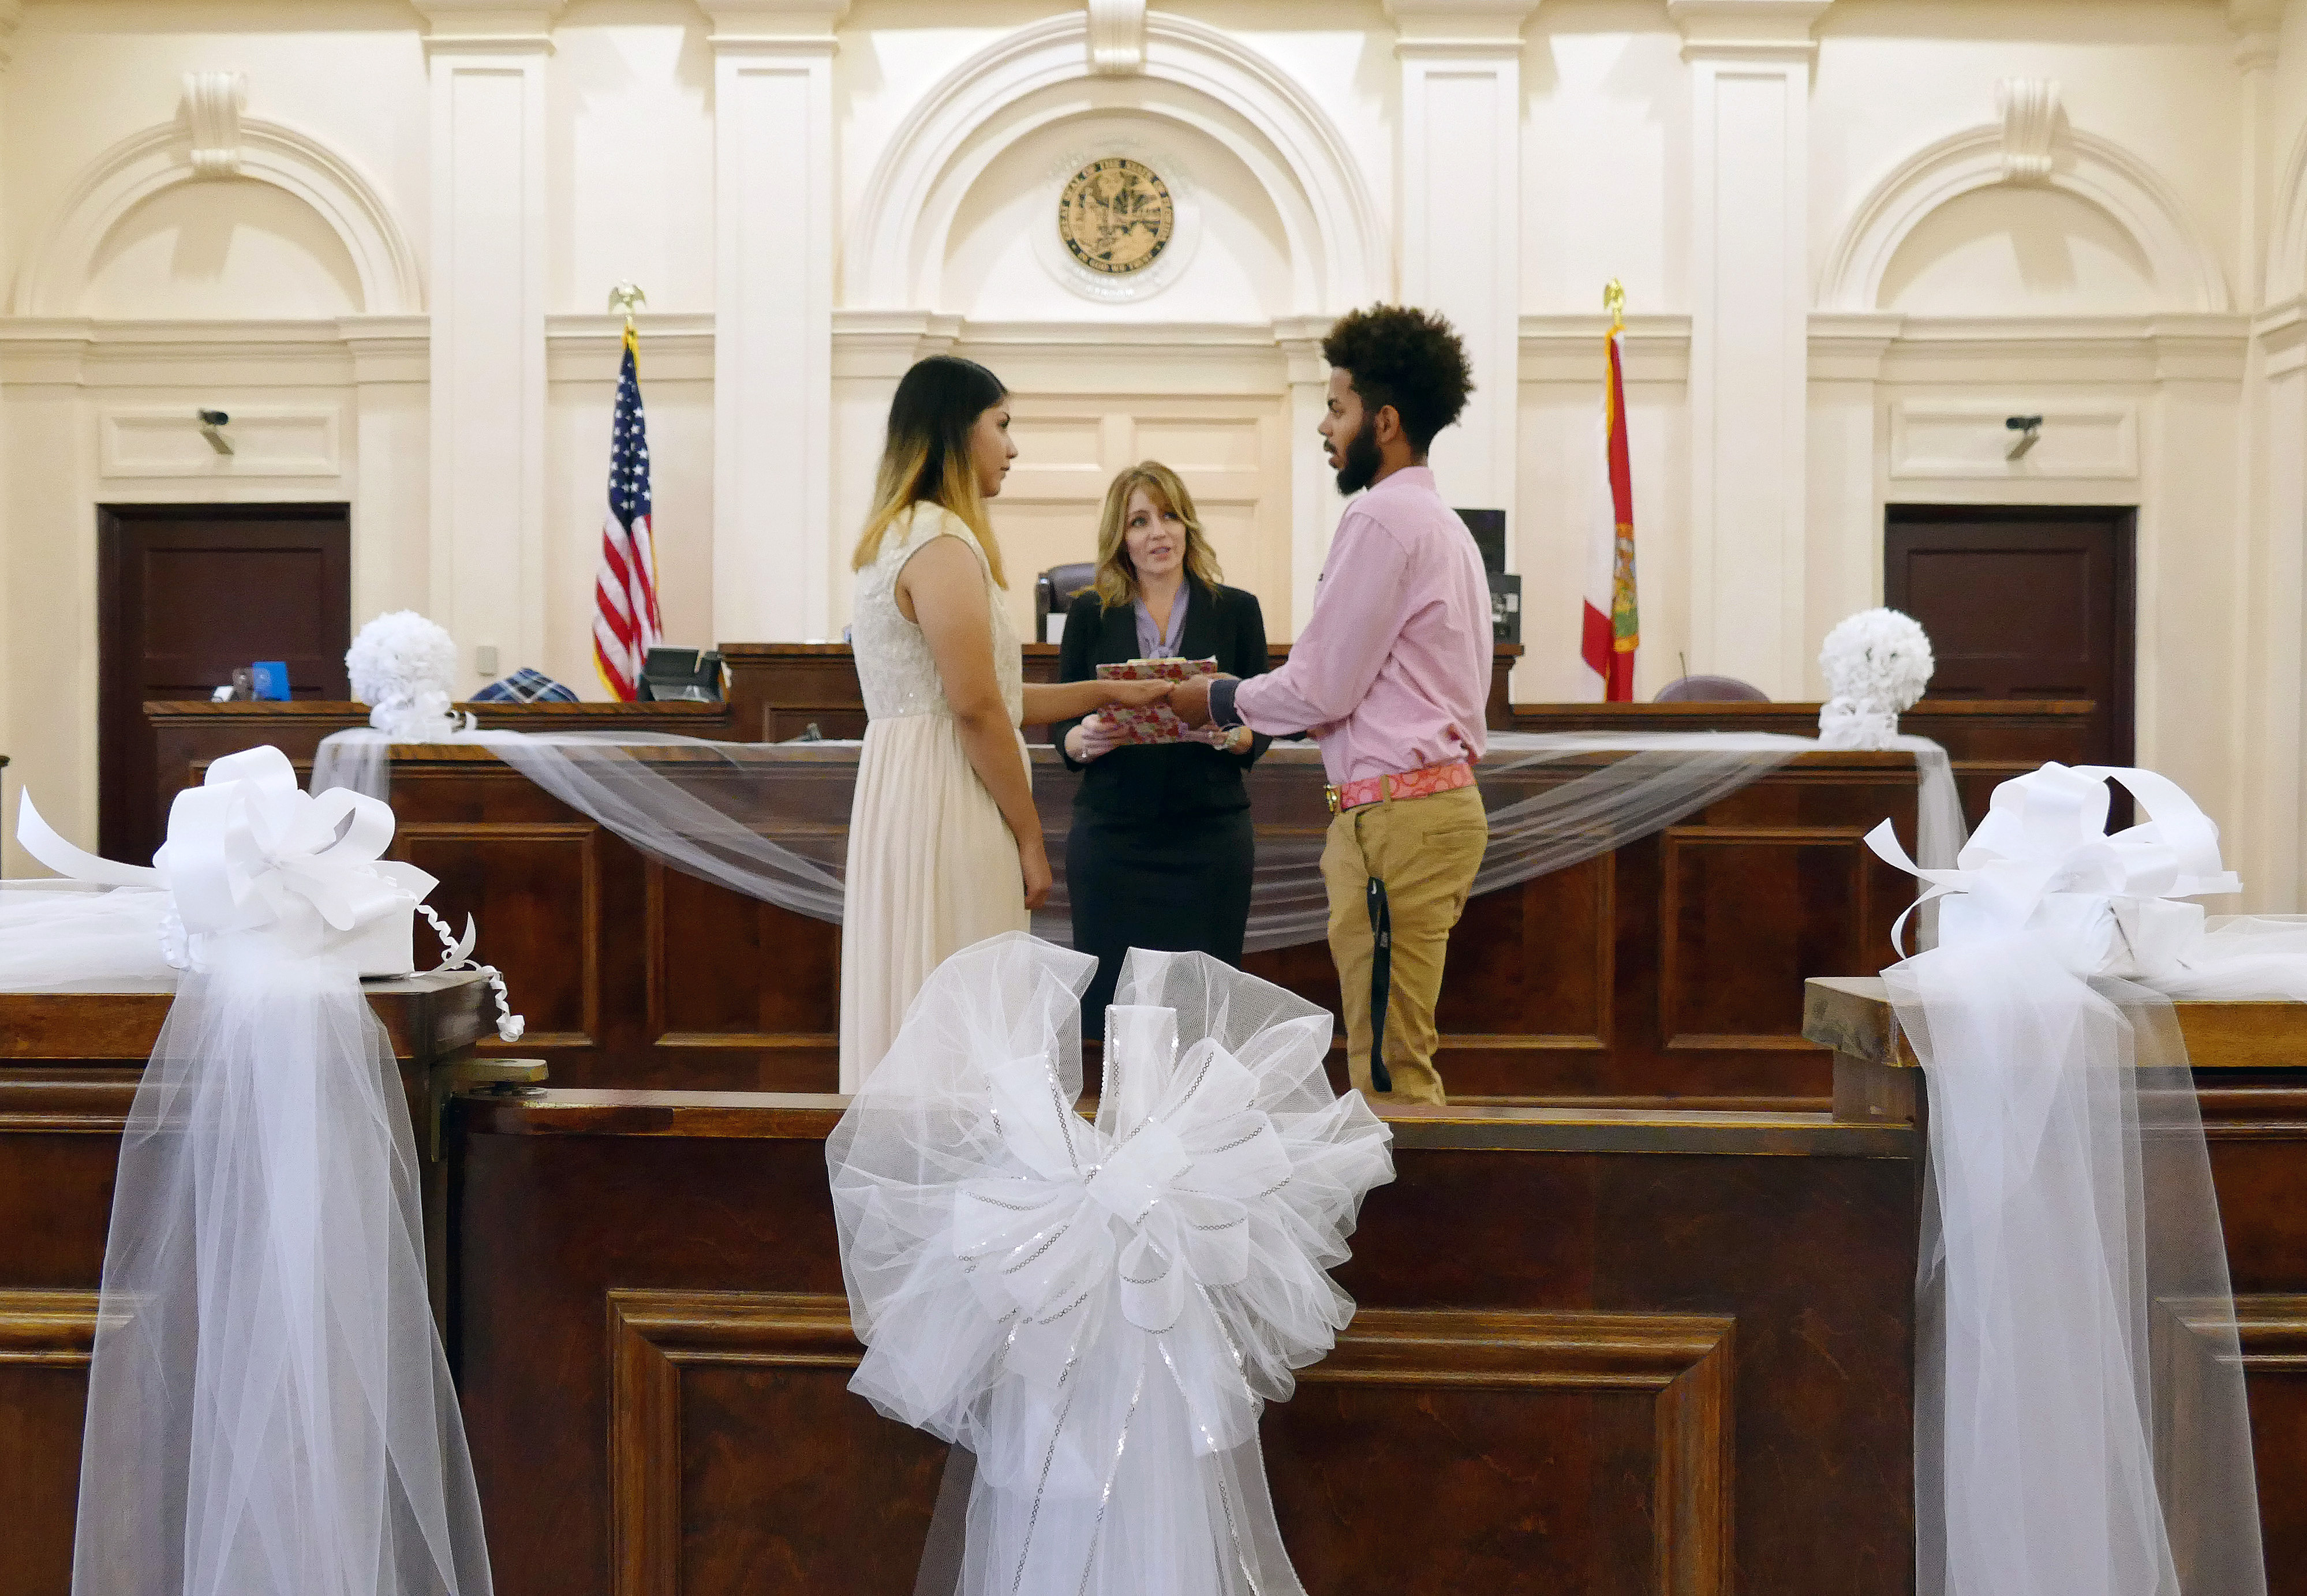 Valentine S Day Ceremonies At Historic Hernando Courthouse Fill The Air With Love,Fall Dresses For Wedding